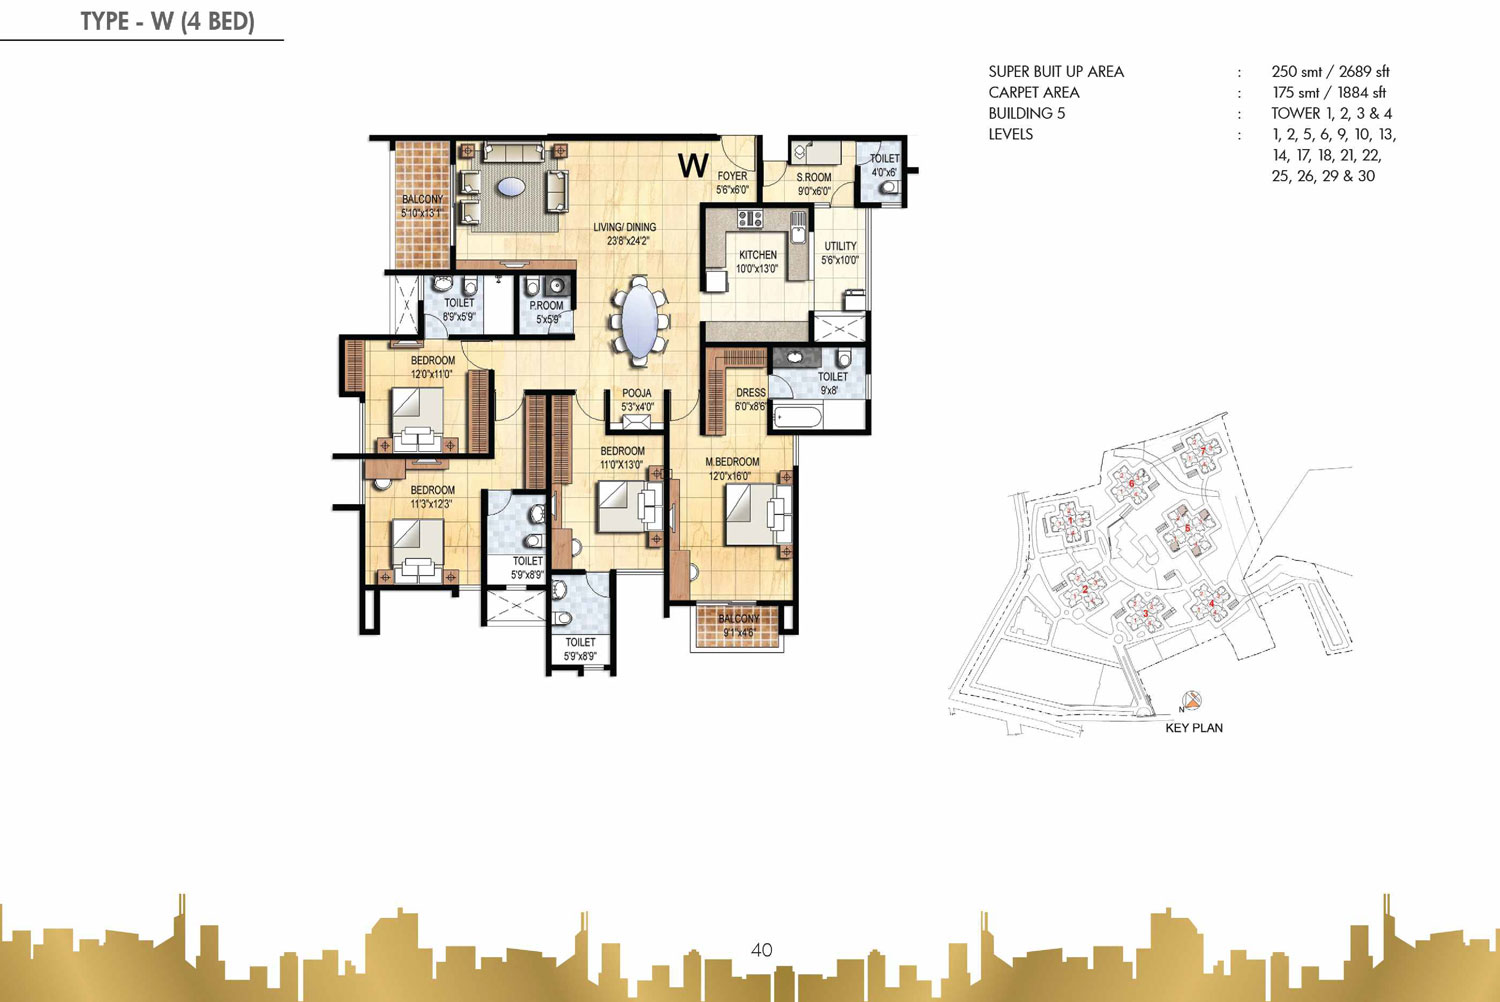 Type W - 4 Bed - 2689 Sq Ft